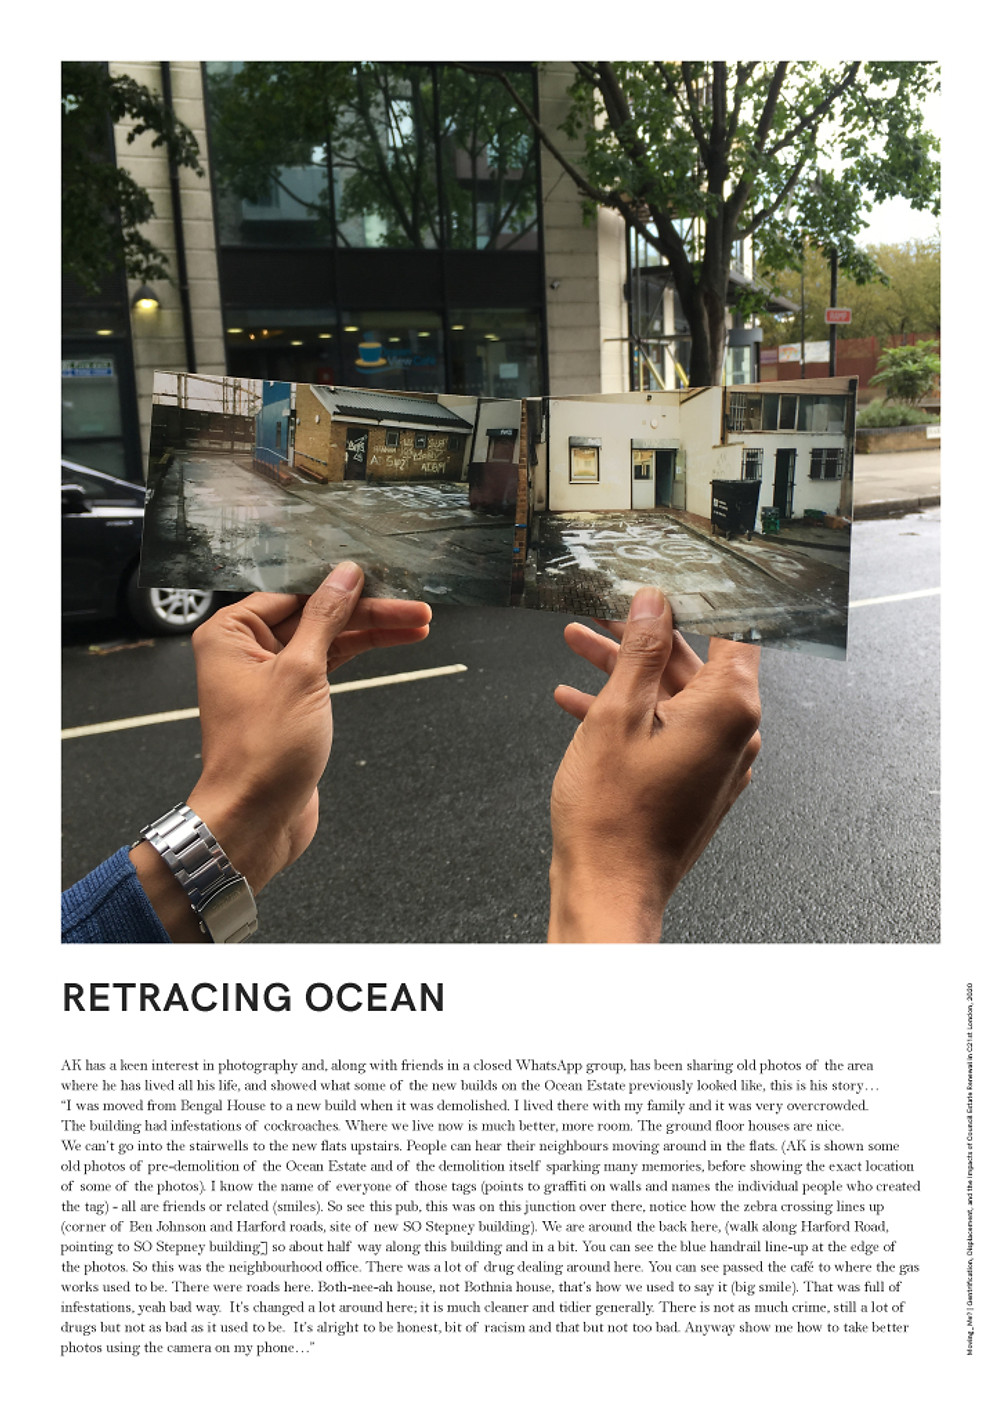 AK has a keen interest in photography and, along with friends in a closed WhatsApp group, has been sharing old photos of the area where he has lived all his life, and showed what some of the new builds on the Ocean Estate previously looked like, this is his story...